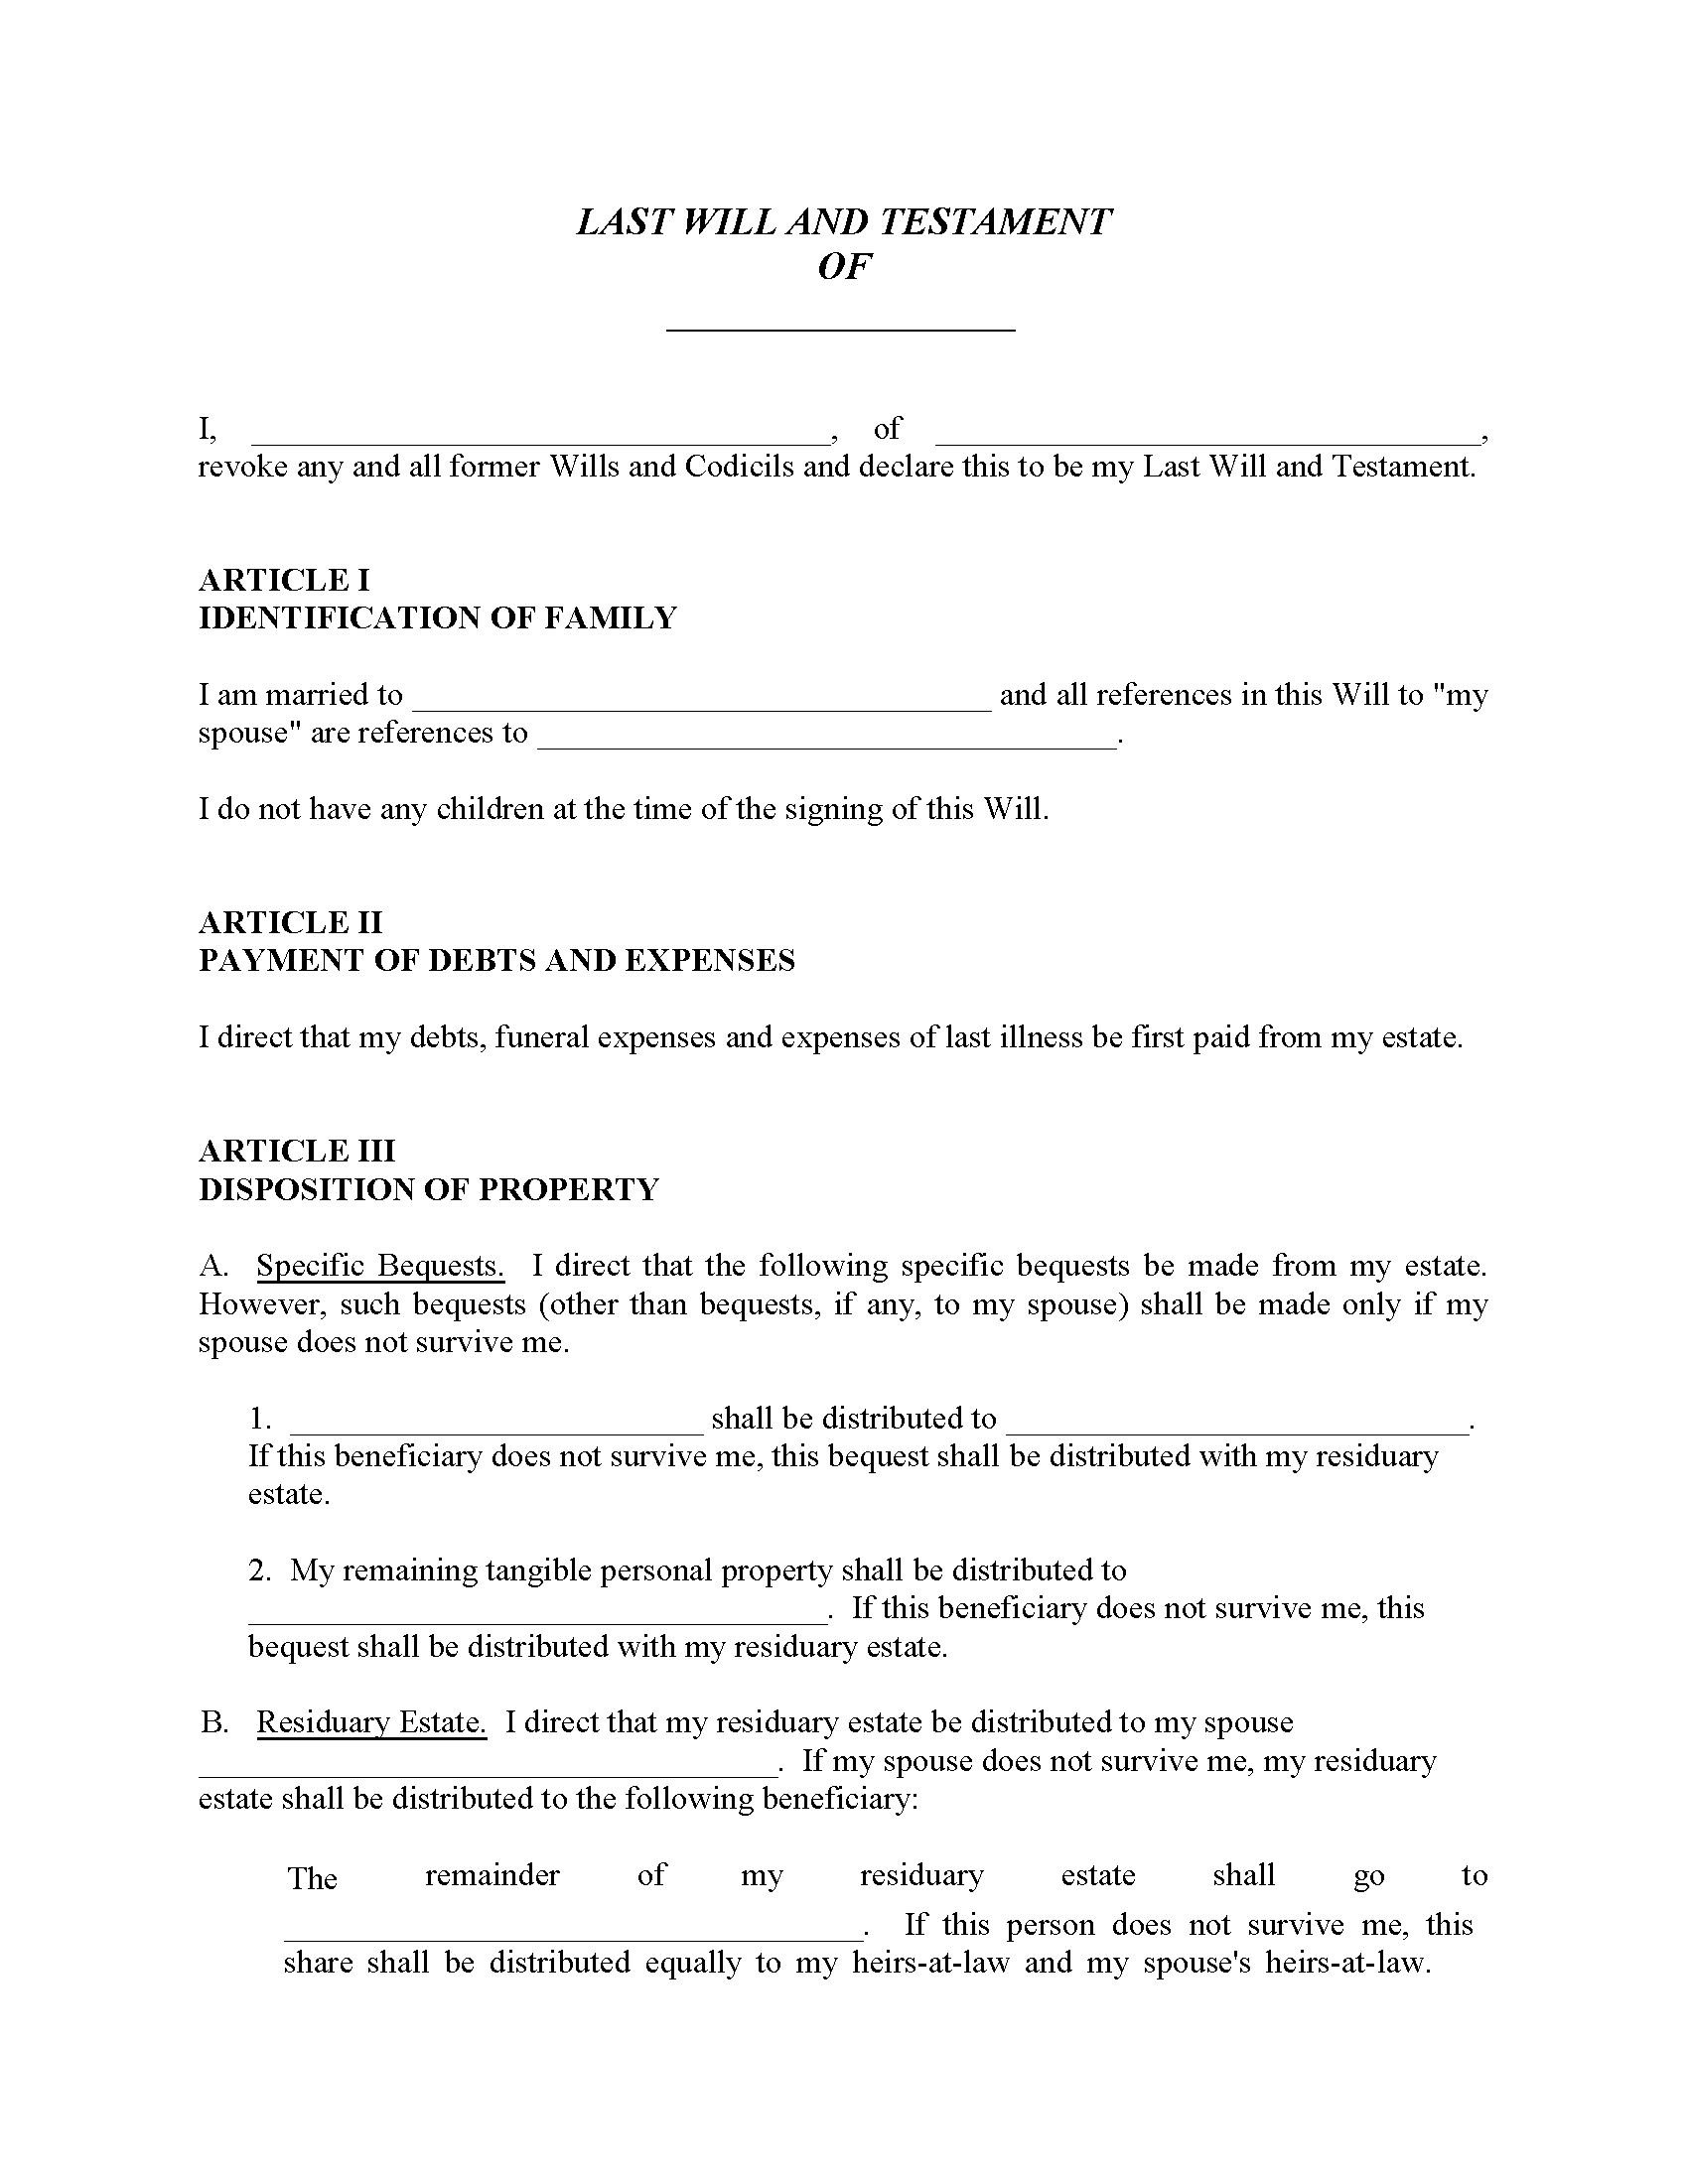 Virginia Will For Married With No Children Fillable PDF Form